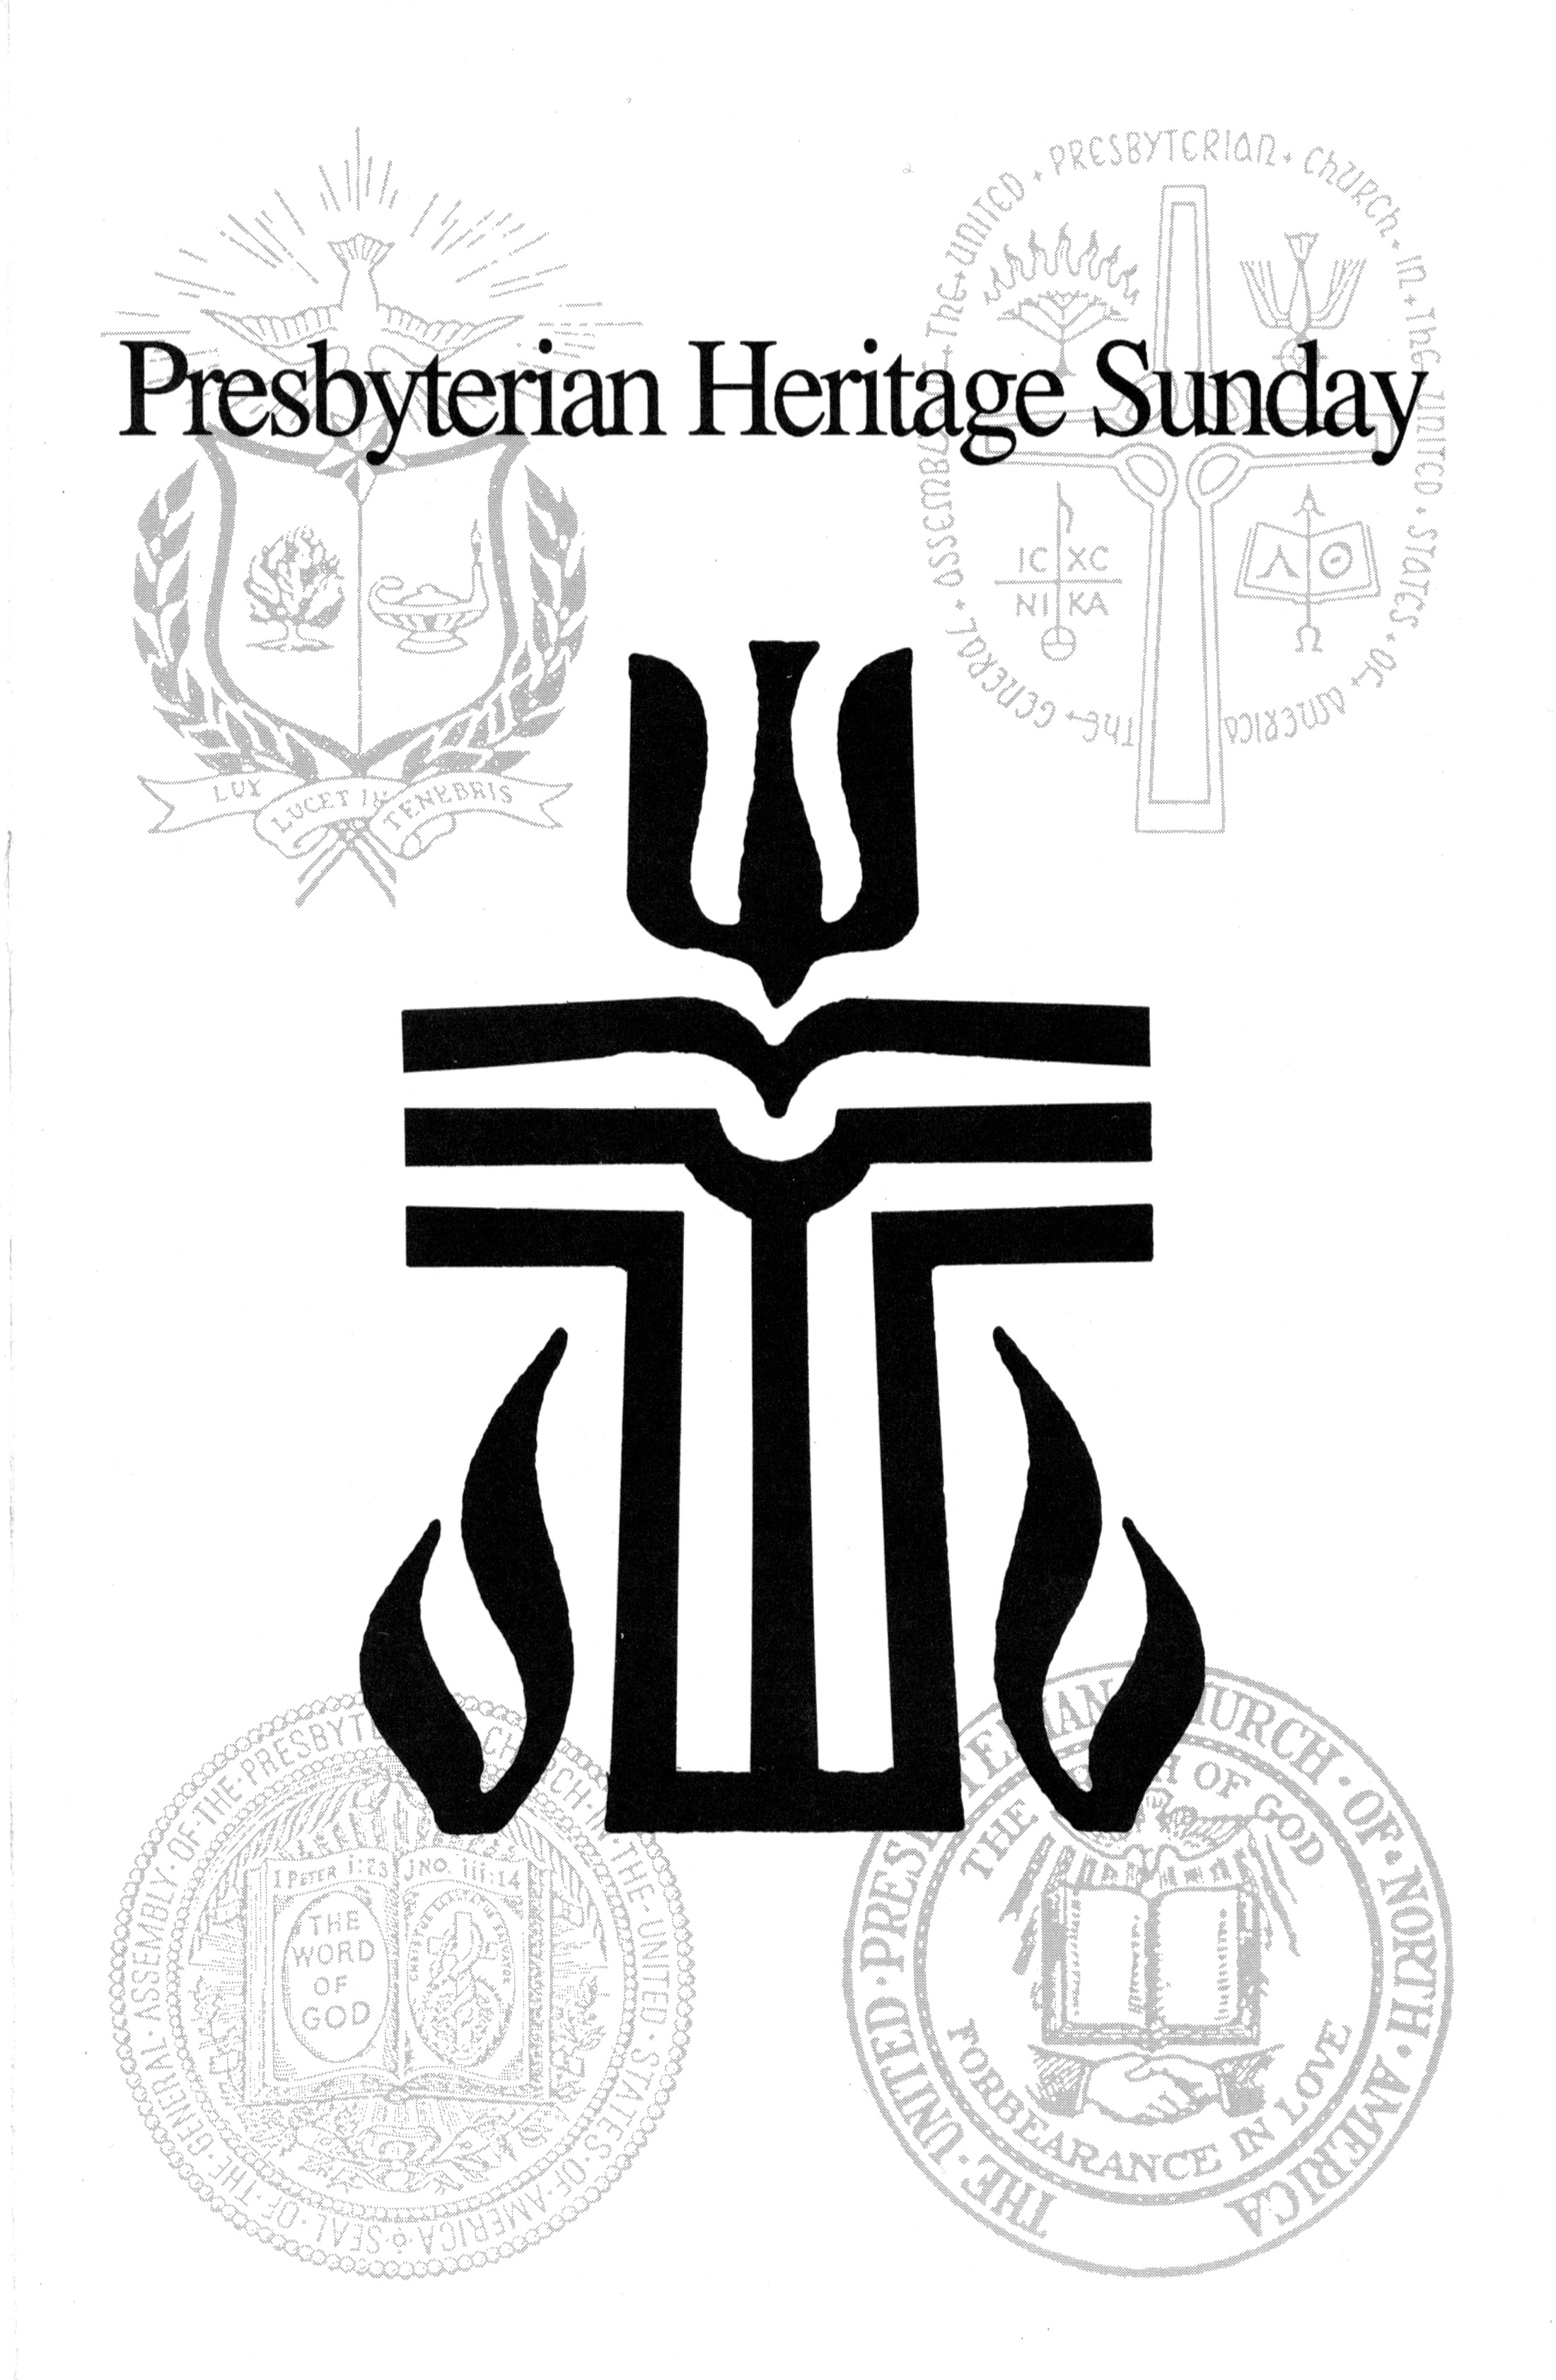 Evangelical covenant order of presbyterians homosexuality in japan